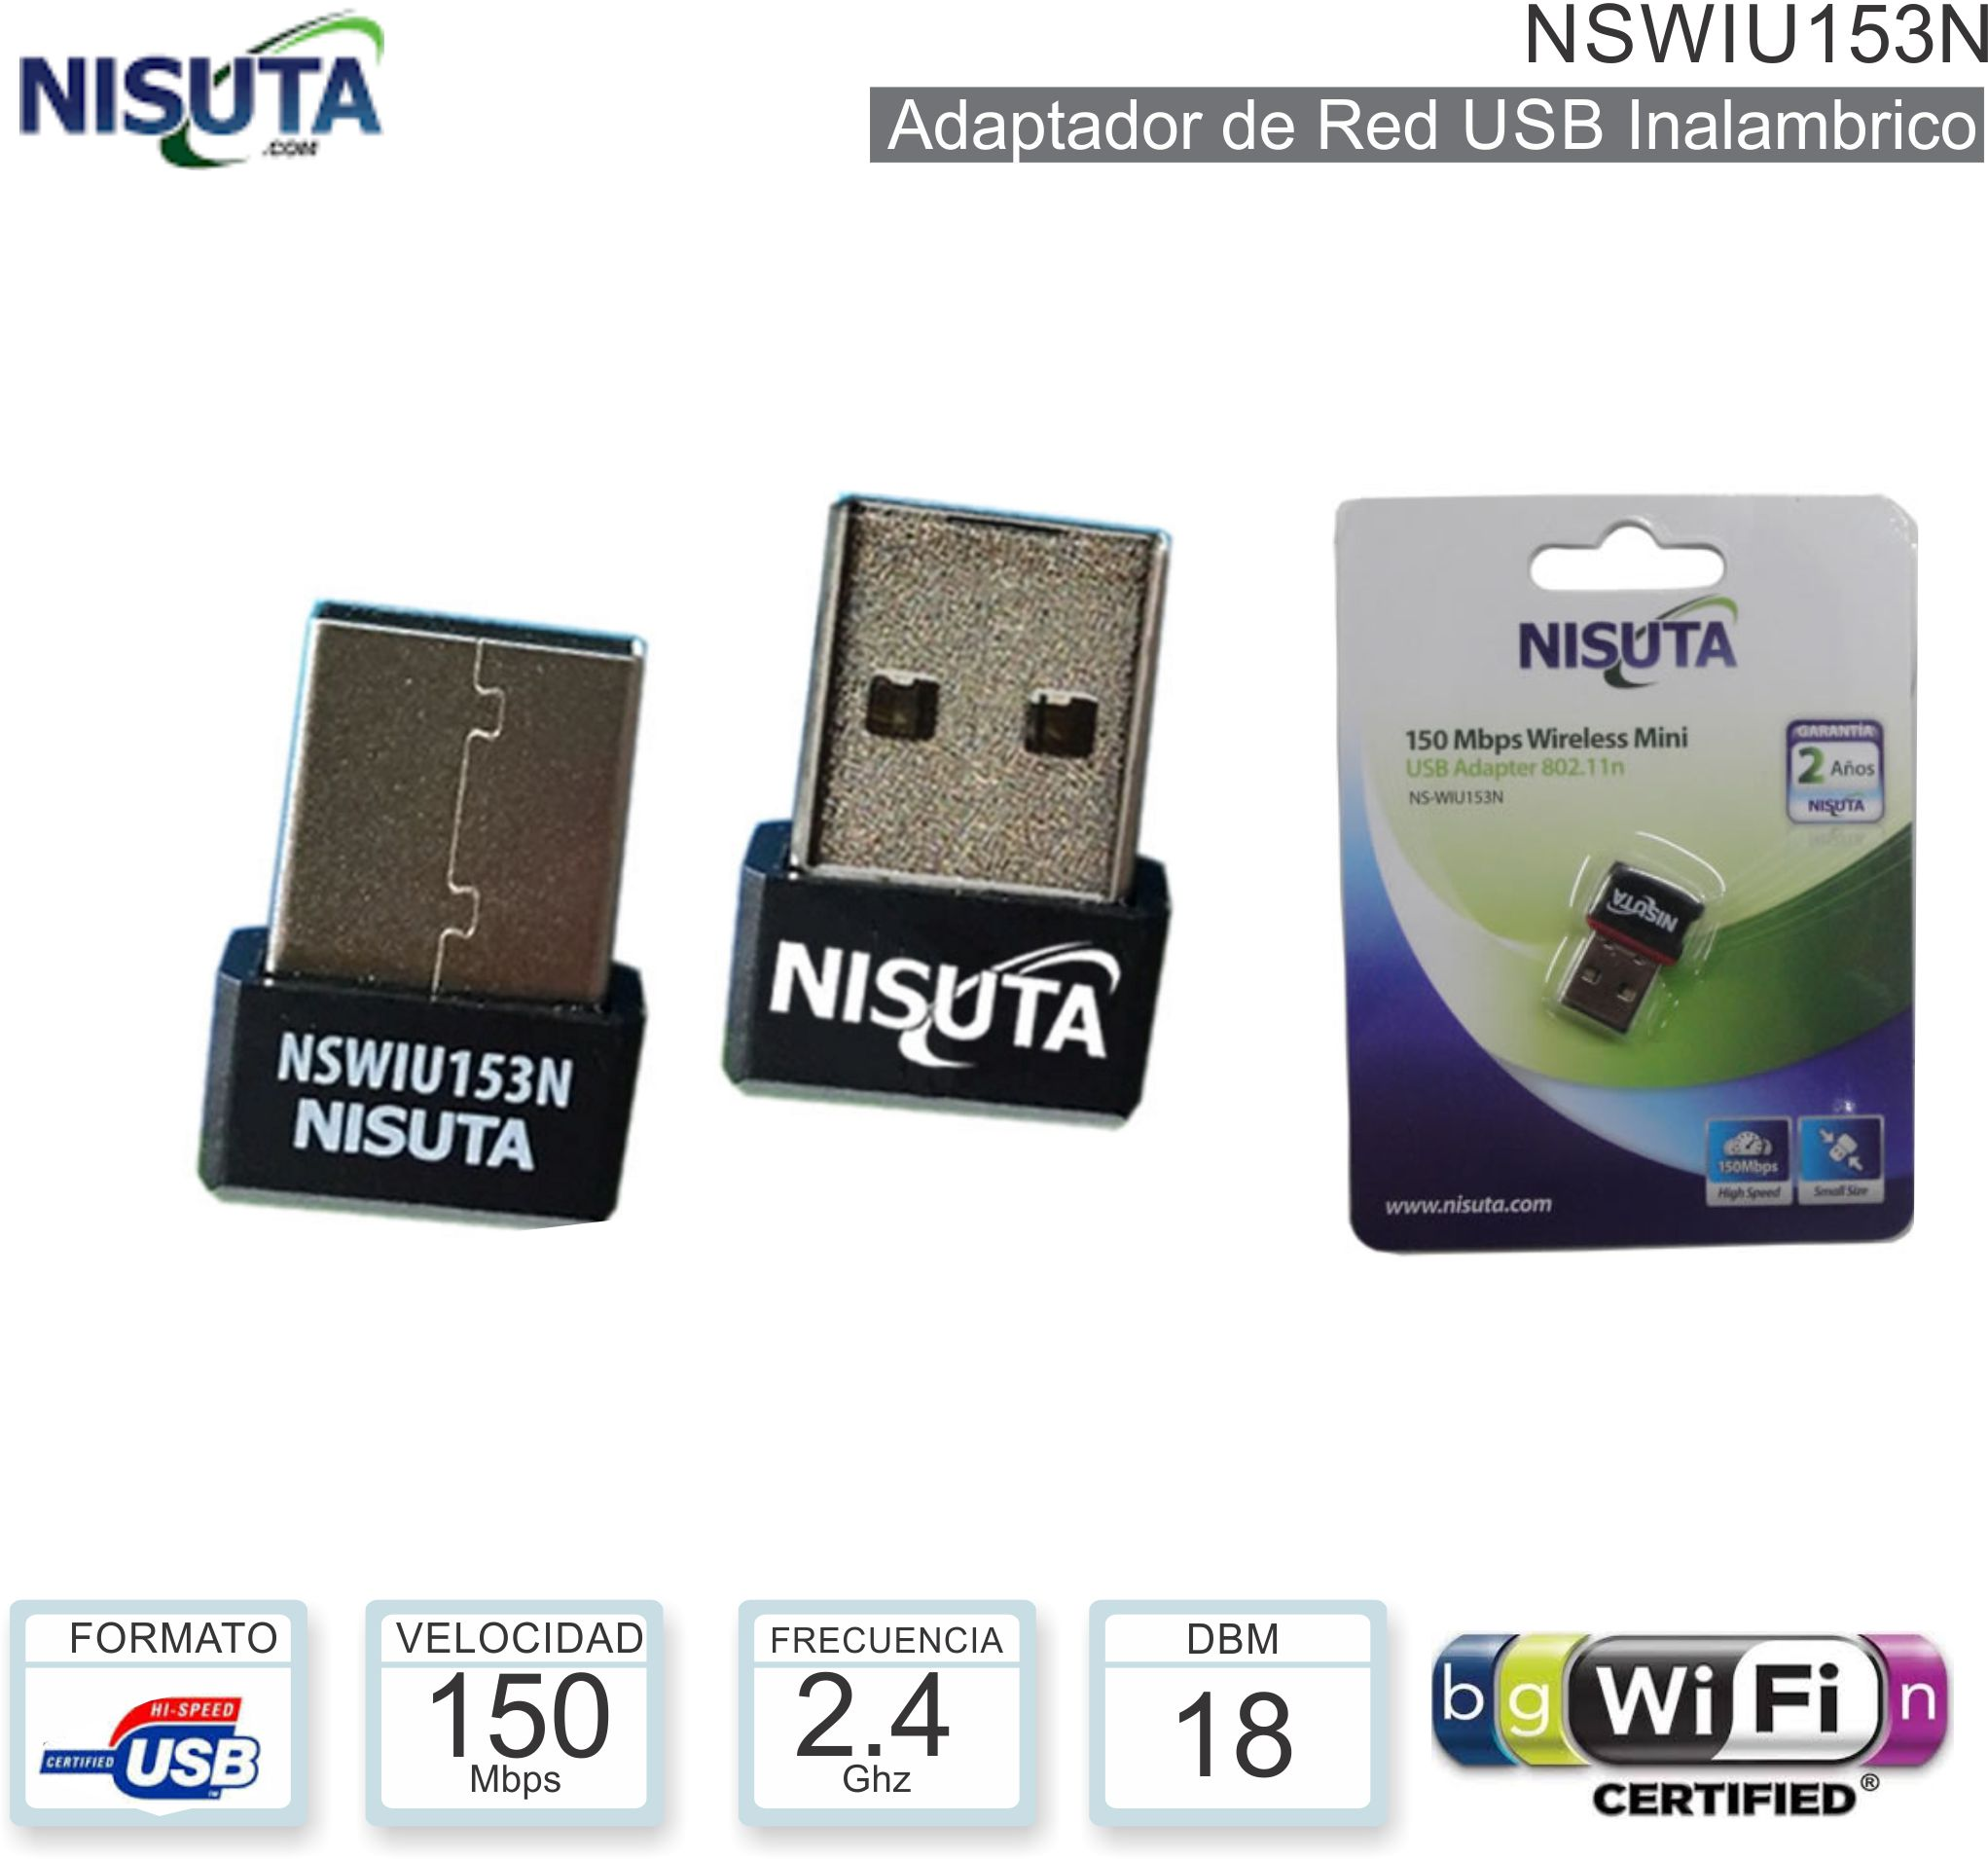 Red USB WIFI NISUTA NSWIU153N